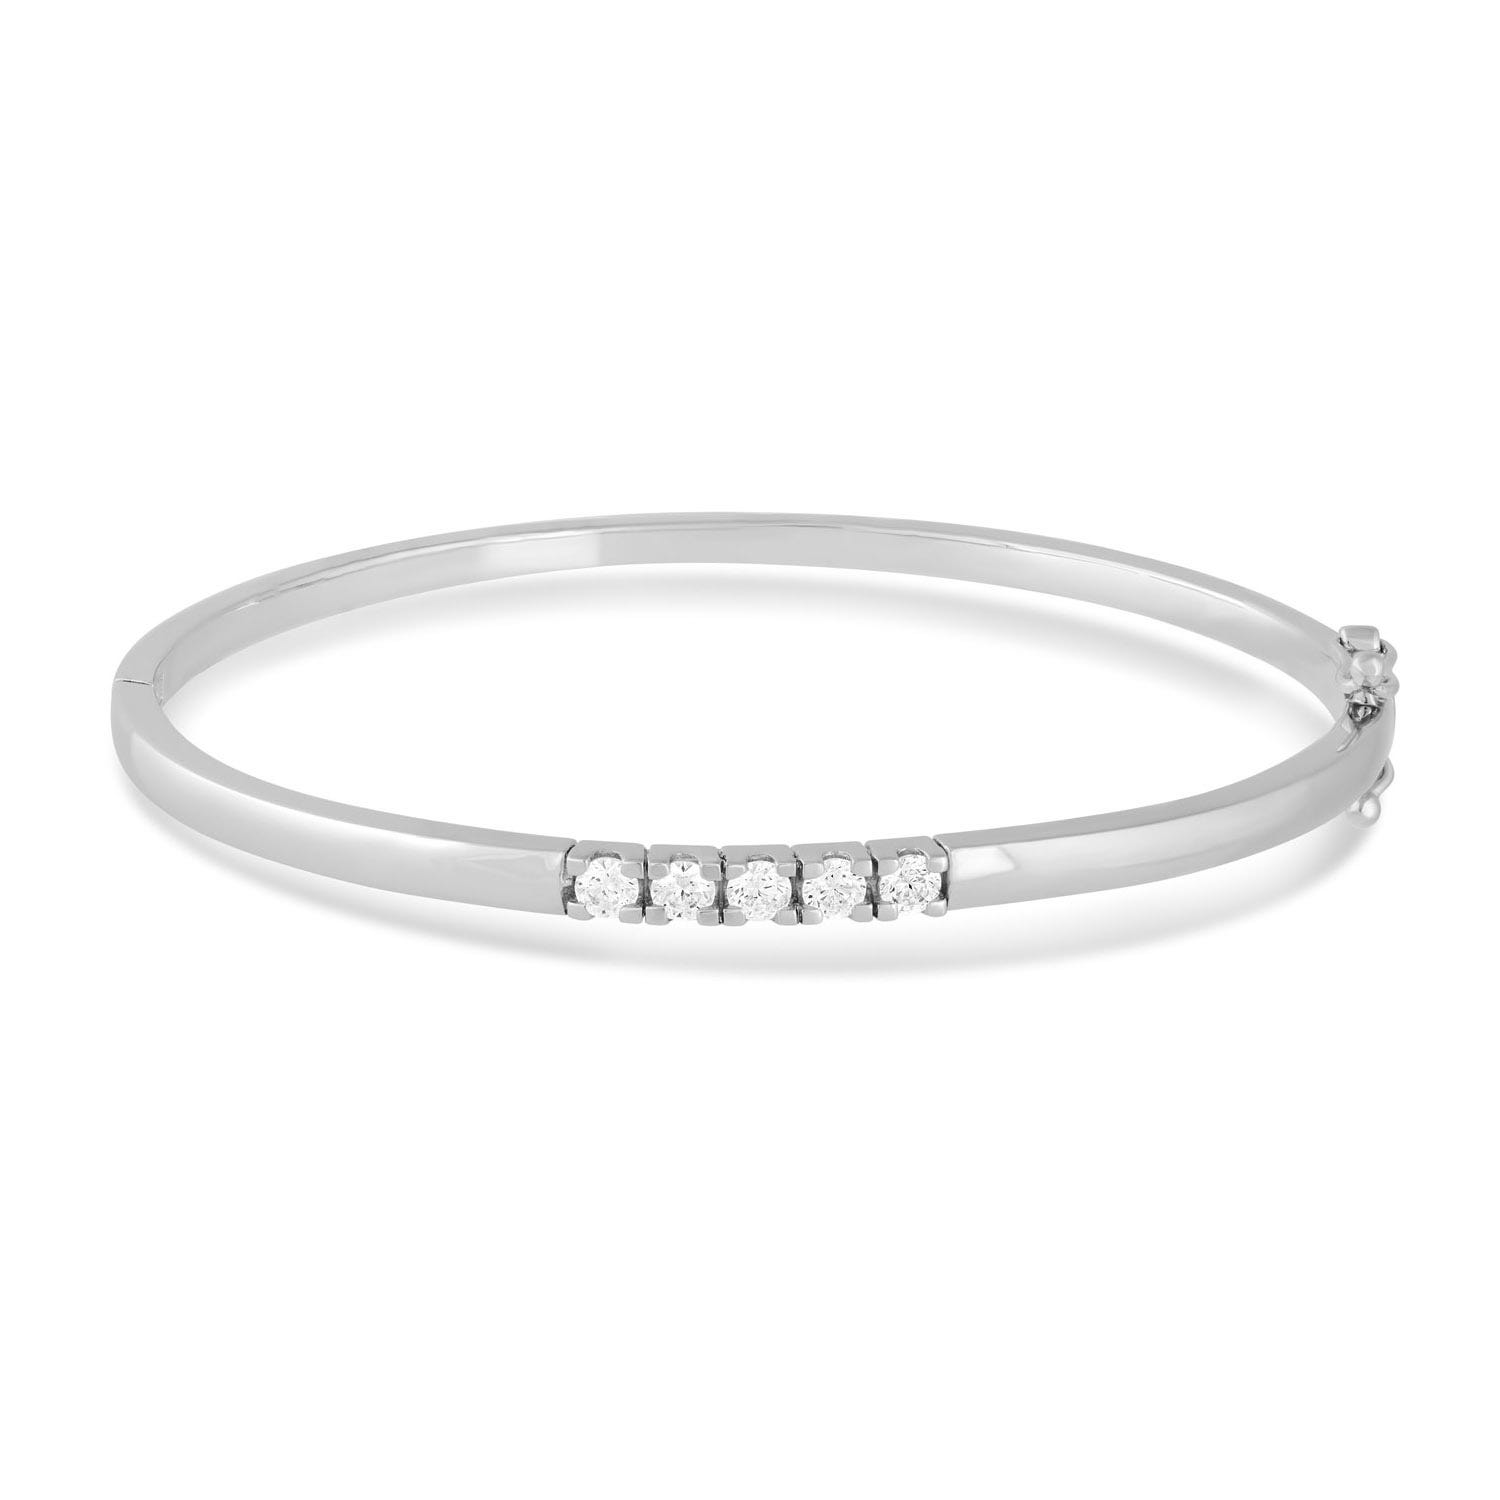 Silver cubic zirconia channel-set bangle